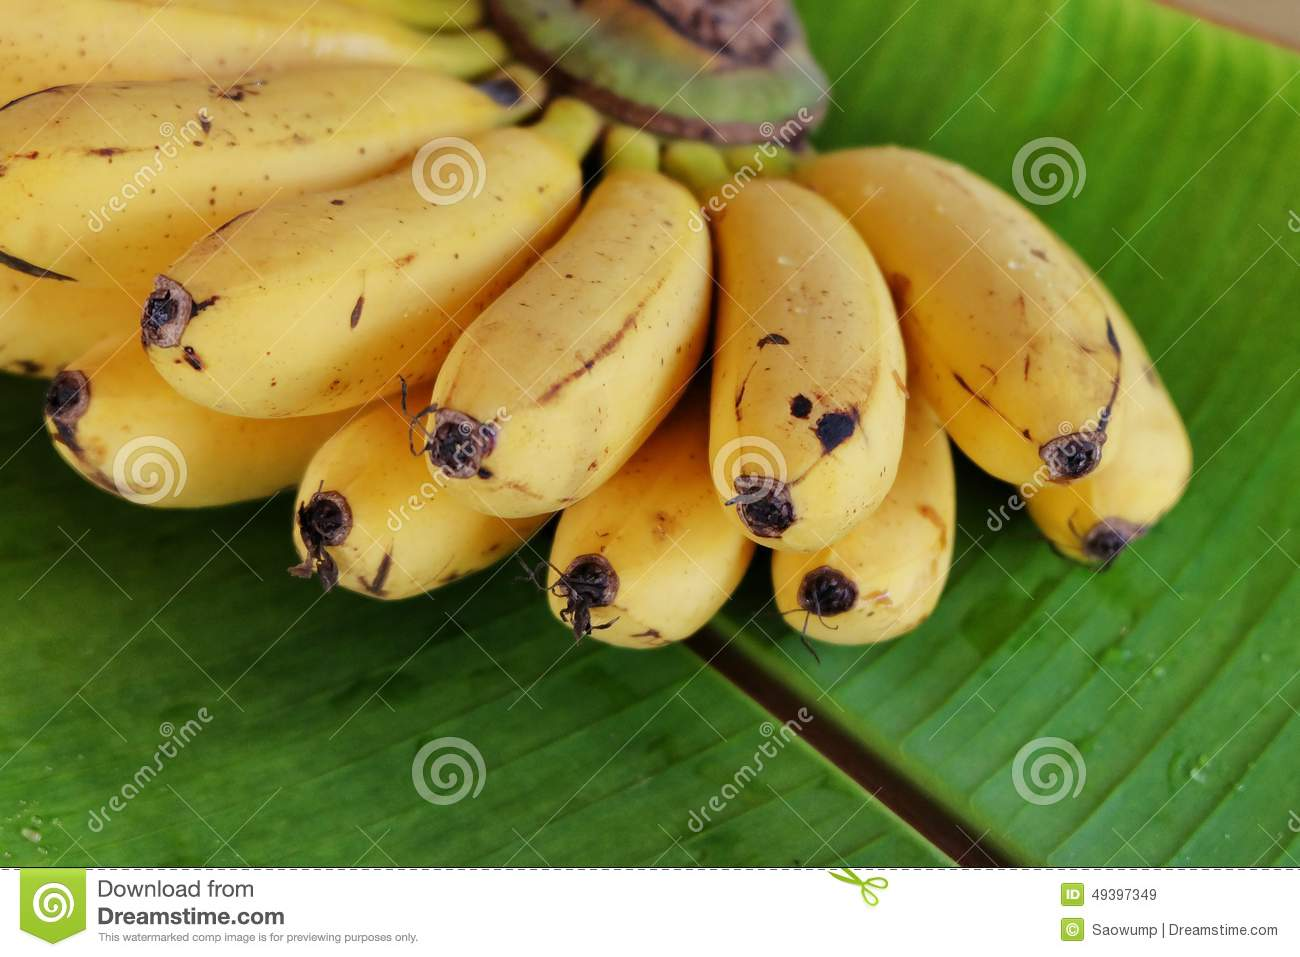 Apple Bananas Information, Recipes and Facts